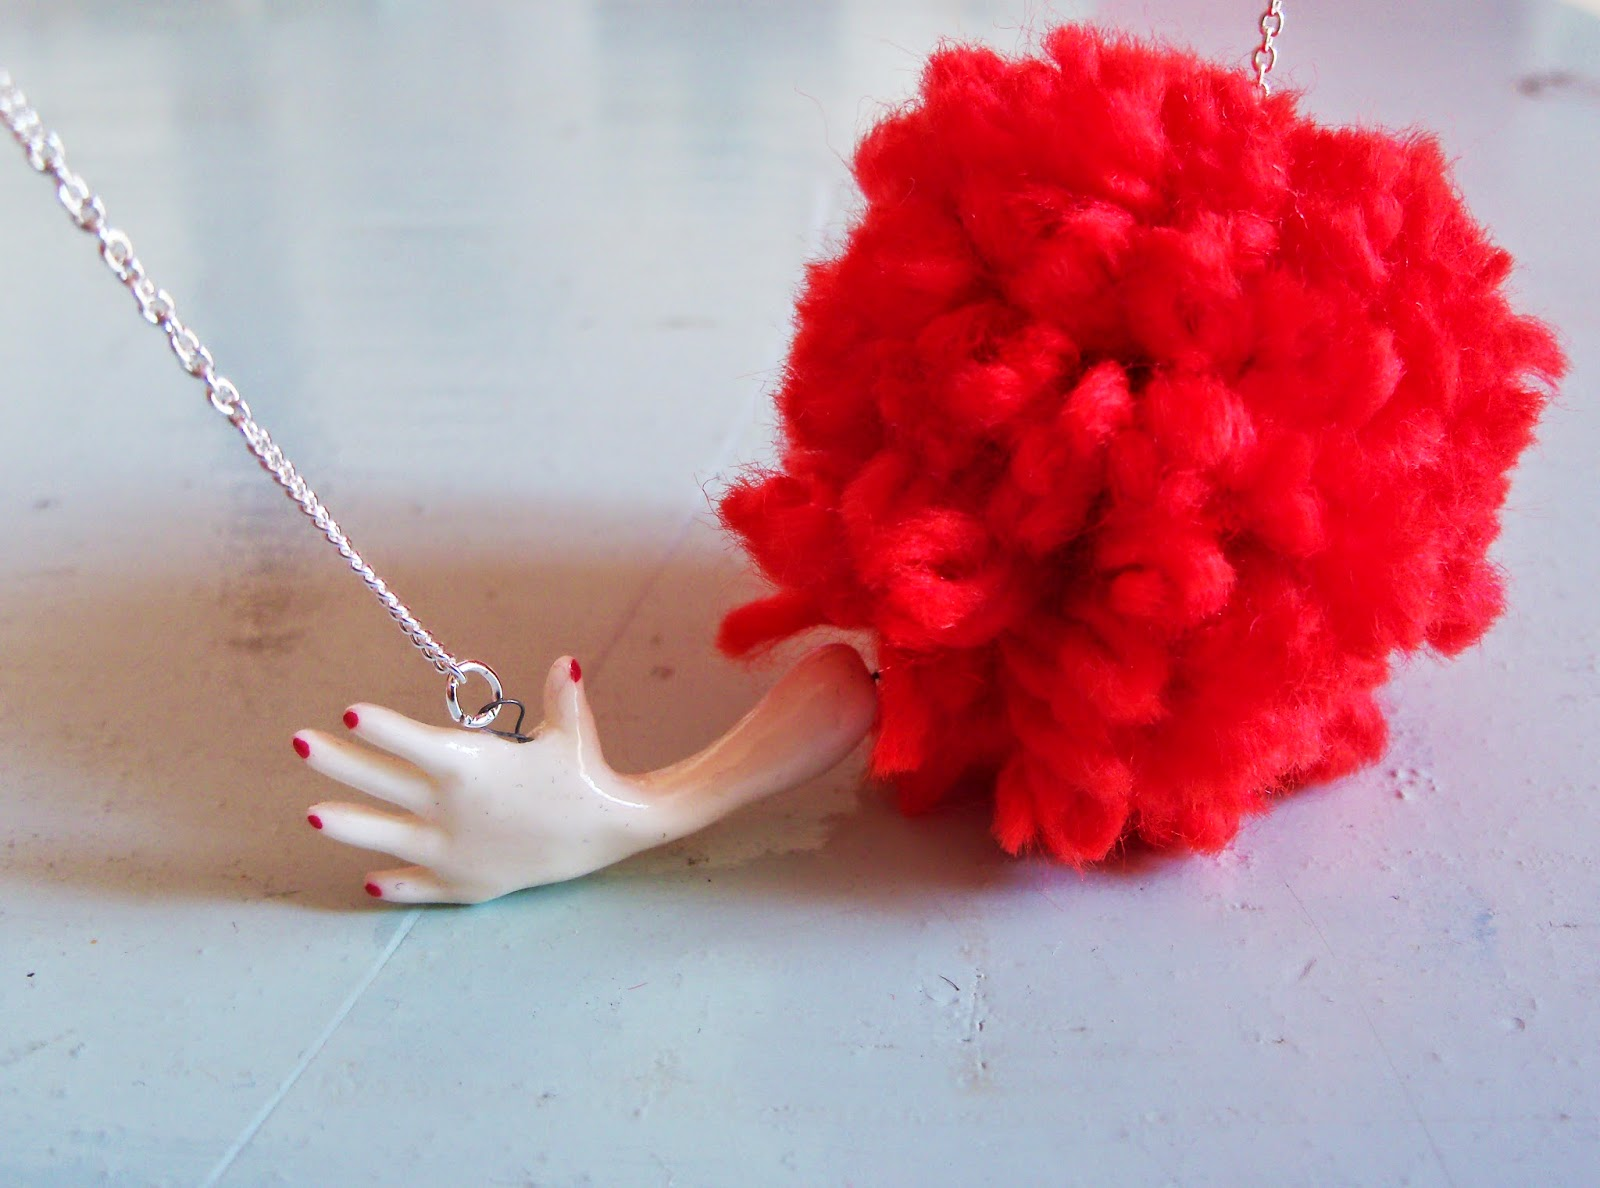 https://www.etsy.com/fr/listing/205652503/adorable-collier-main-et-pompon-rouge?ref=shop_home_active_23